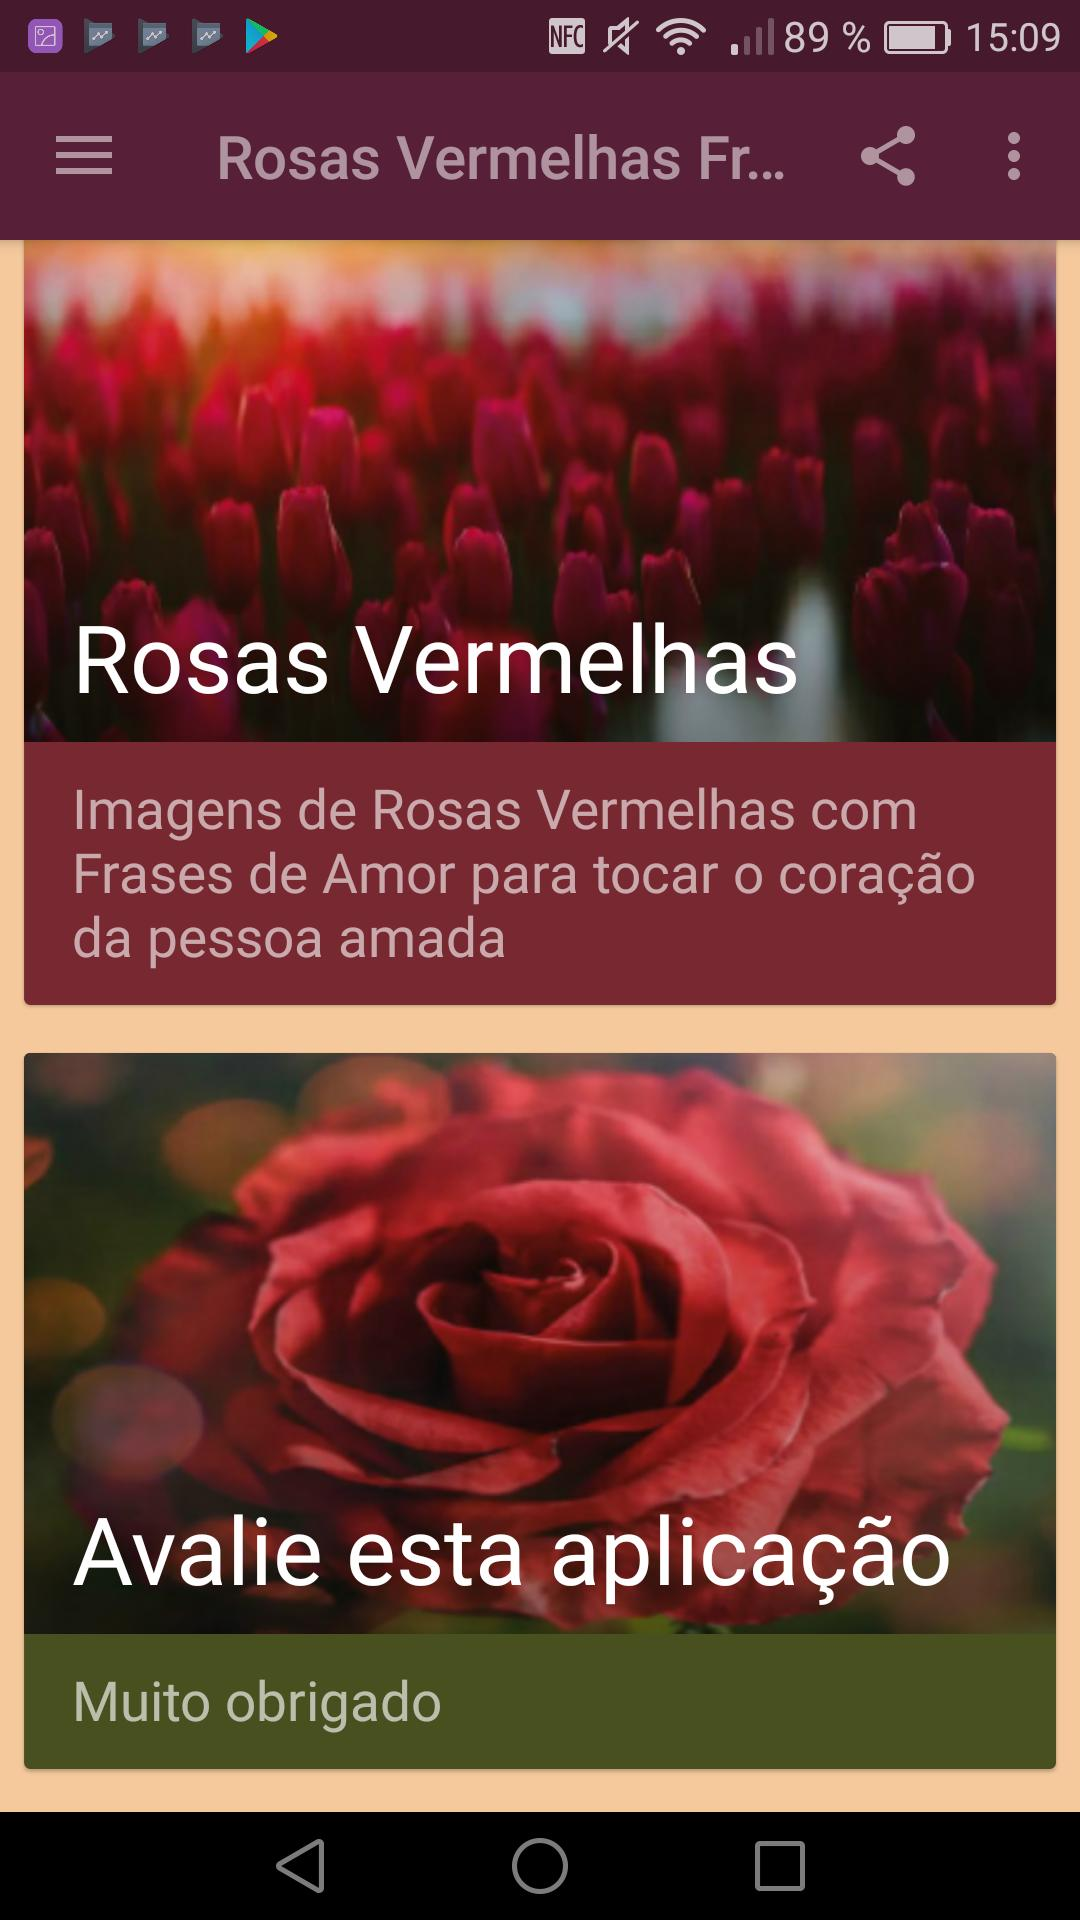 Rosas Vermelhas Com Frases De Amor For Android Apk Download